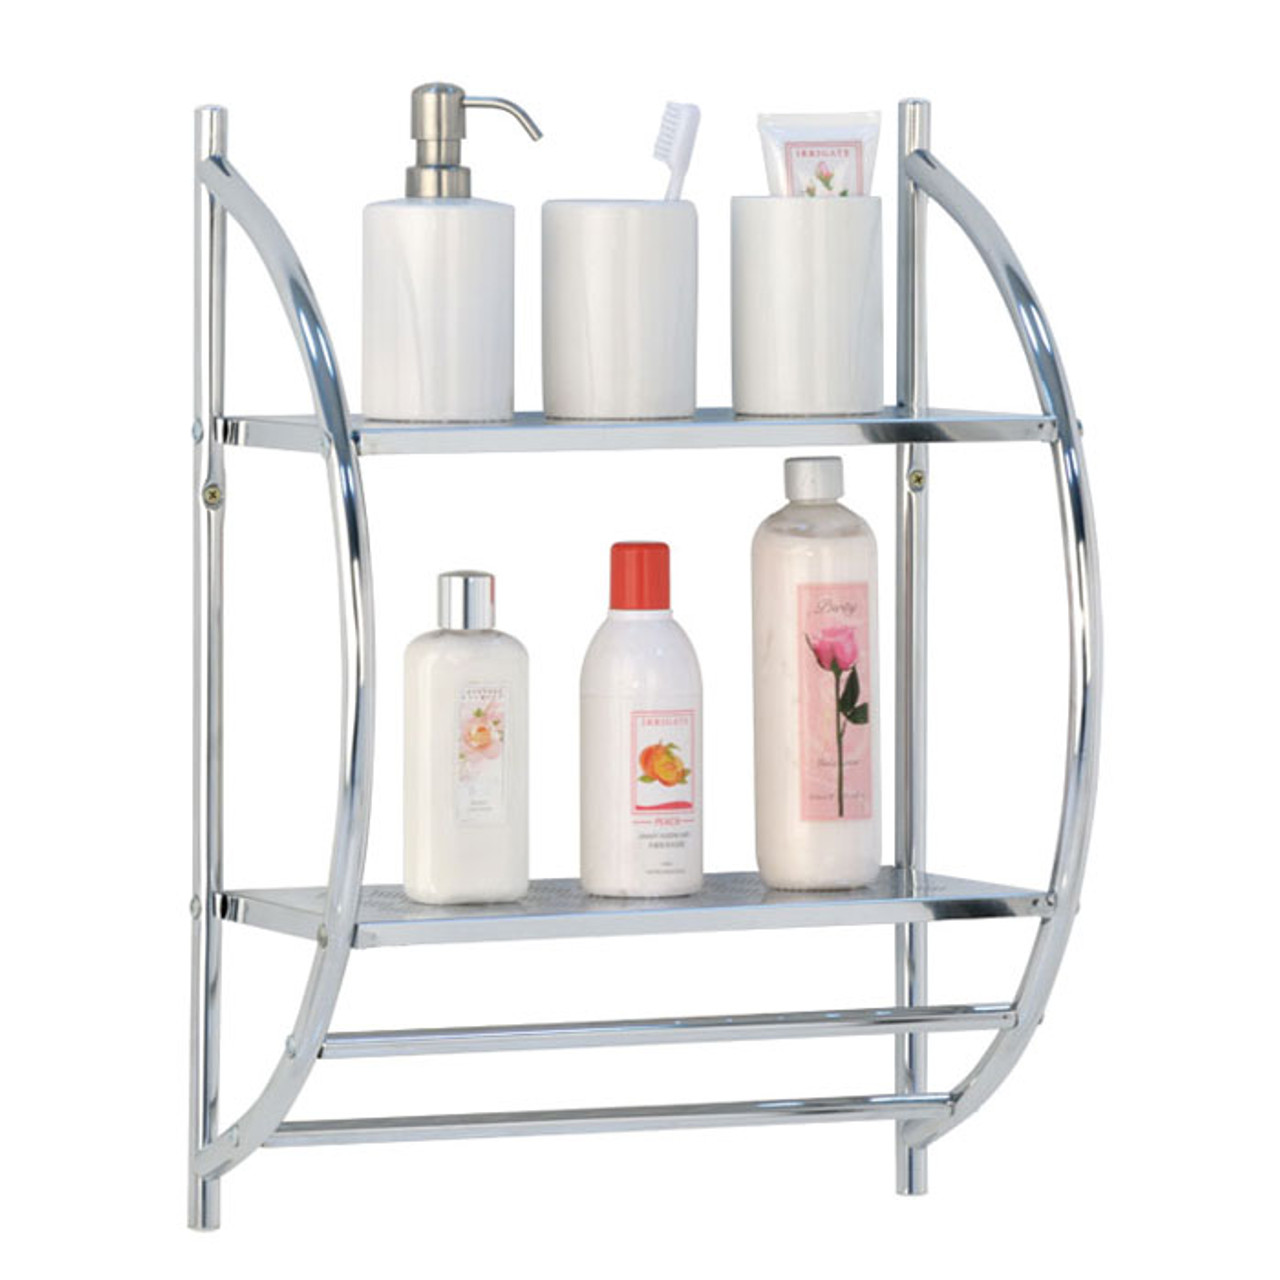 Bathroom Shelf - Solutions - Your Organized Living Store on metal wall shelf rack, metal bathroom storage shelf, metal bathroom storage racks, metal bathroom towel rack,